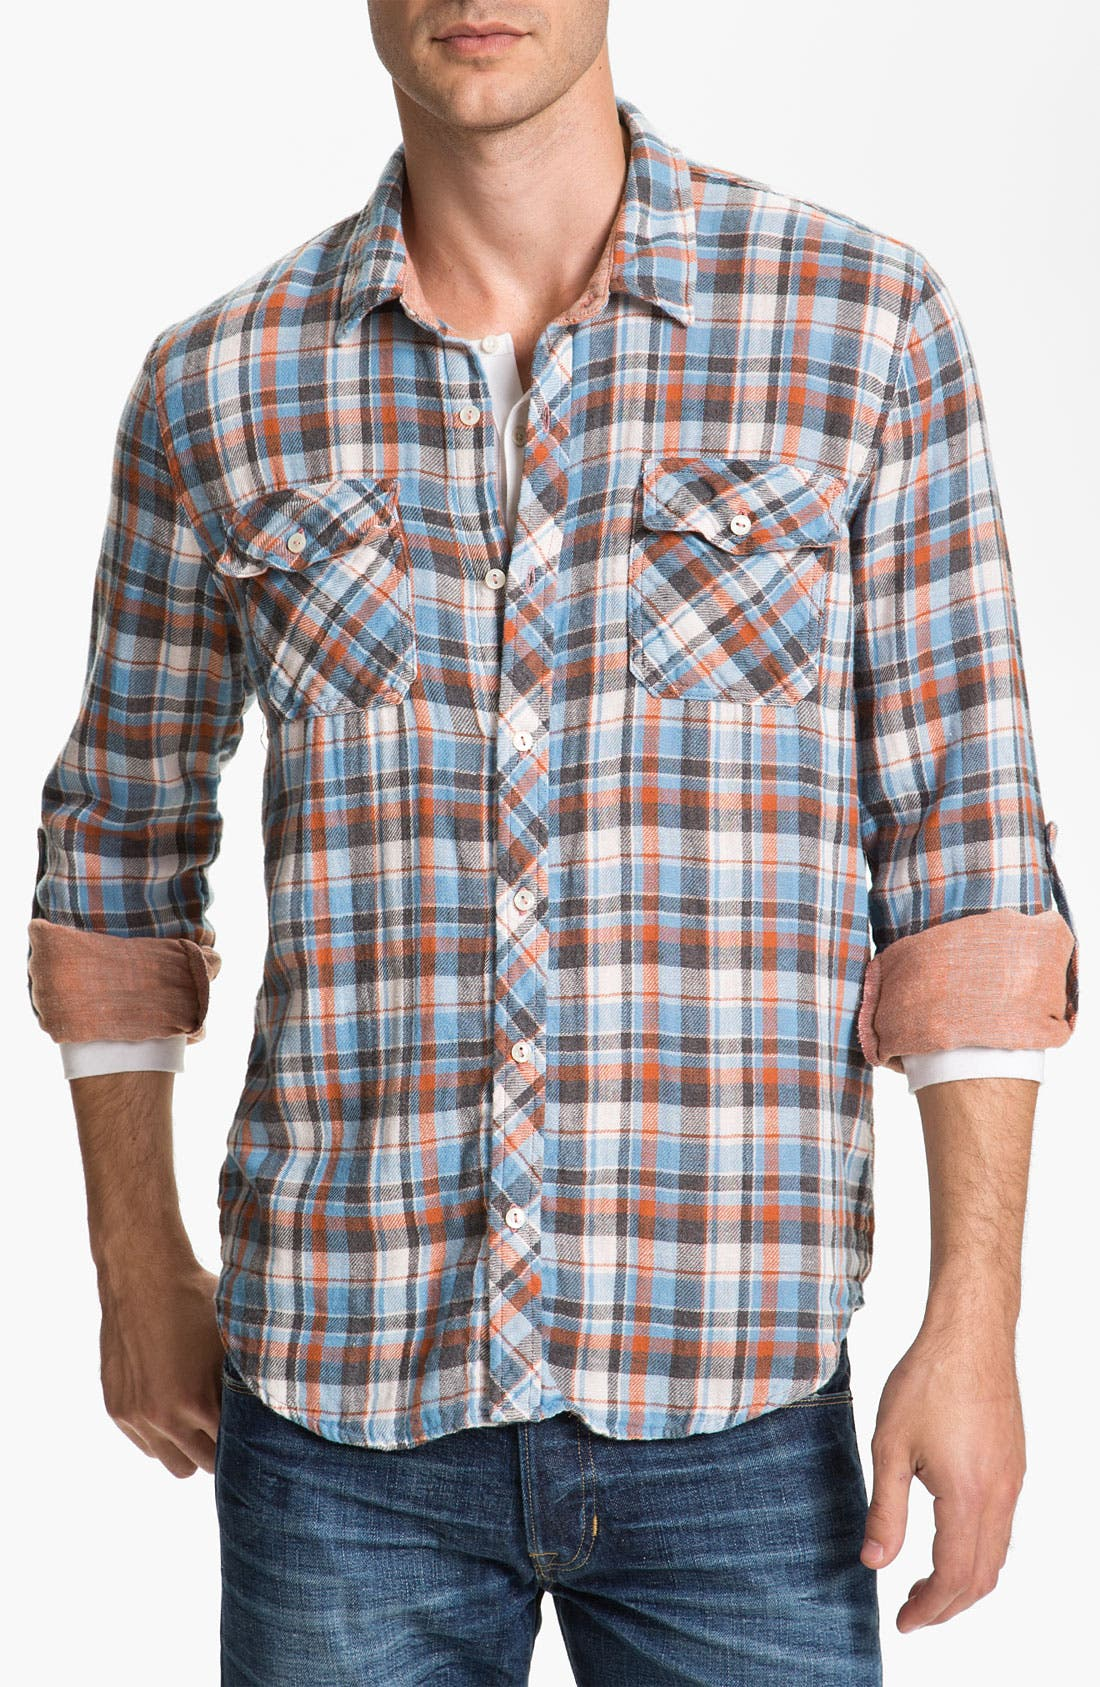 Alternate Image 1 Selected - Splendid Mills 'Cliff' Plaid Cotton Flannel Shirt